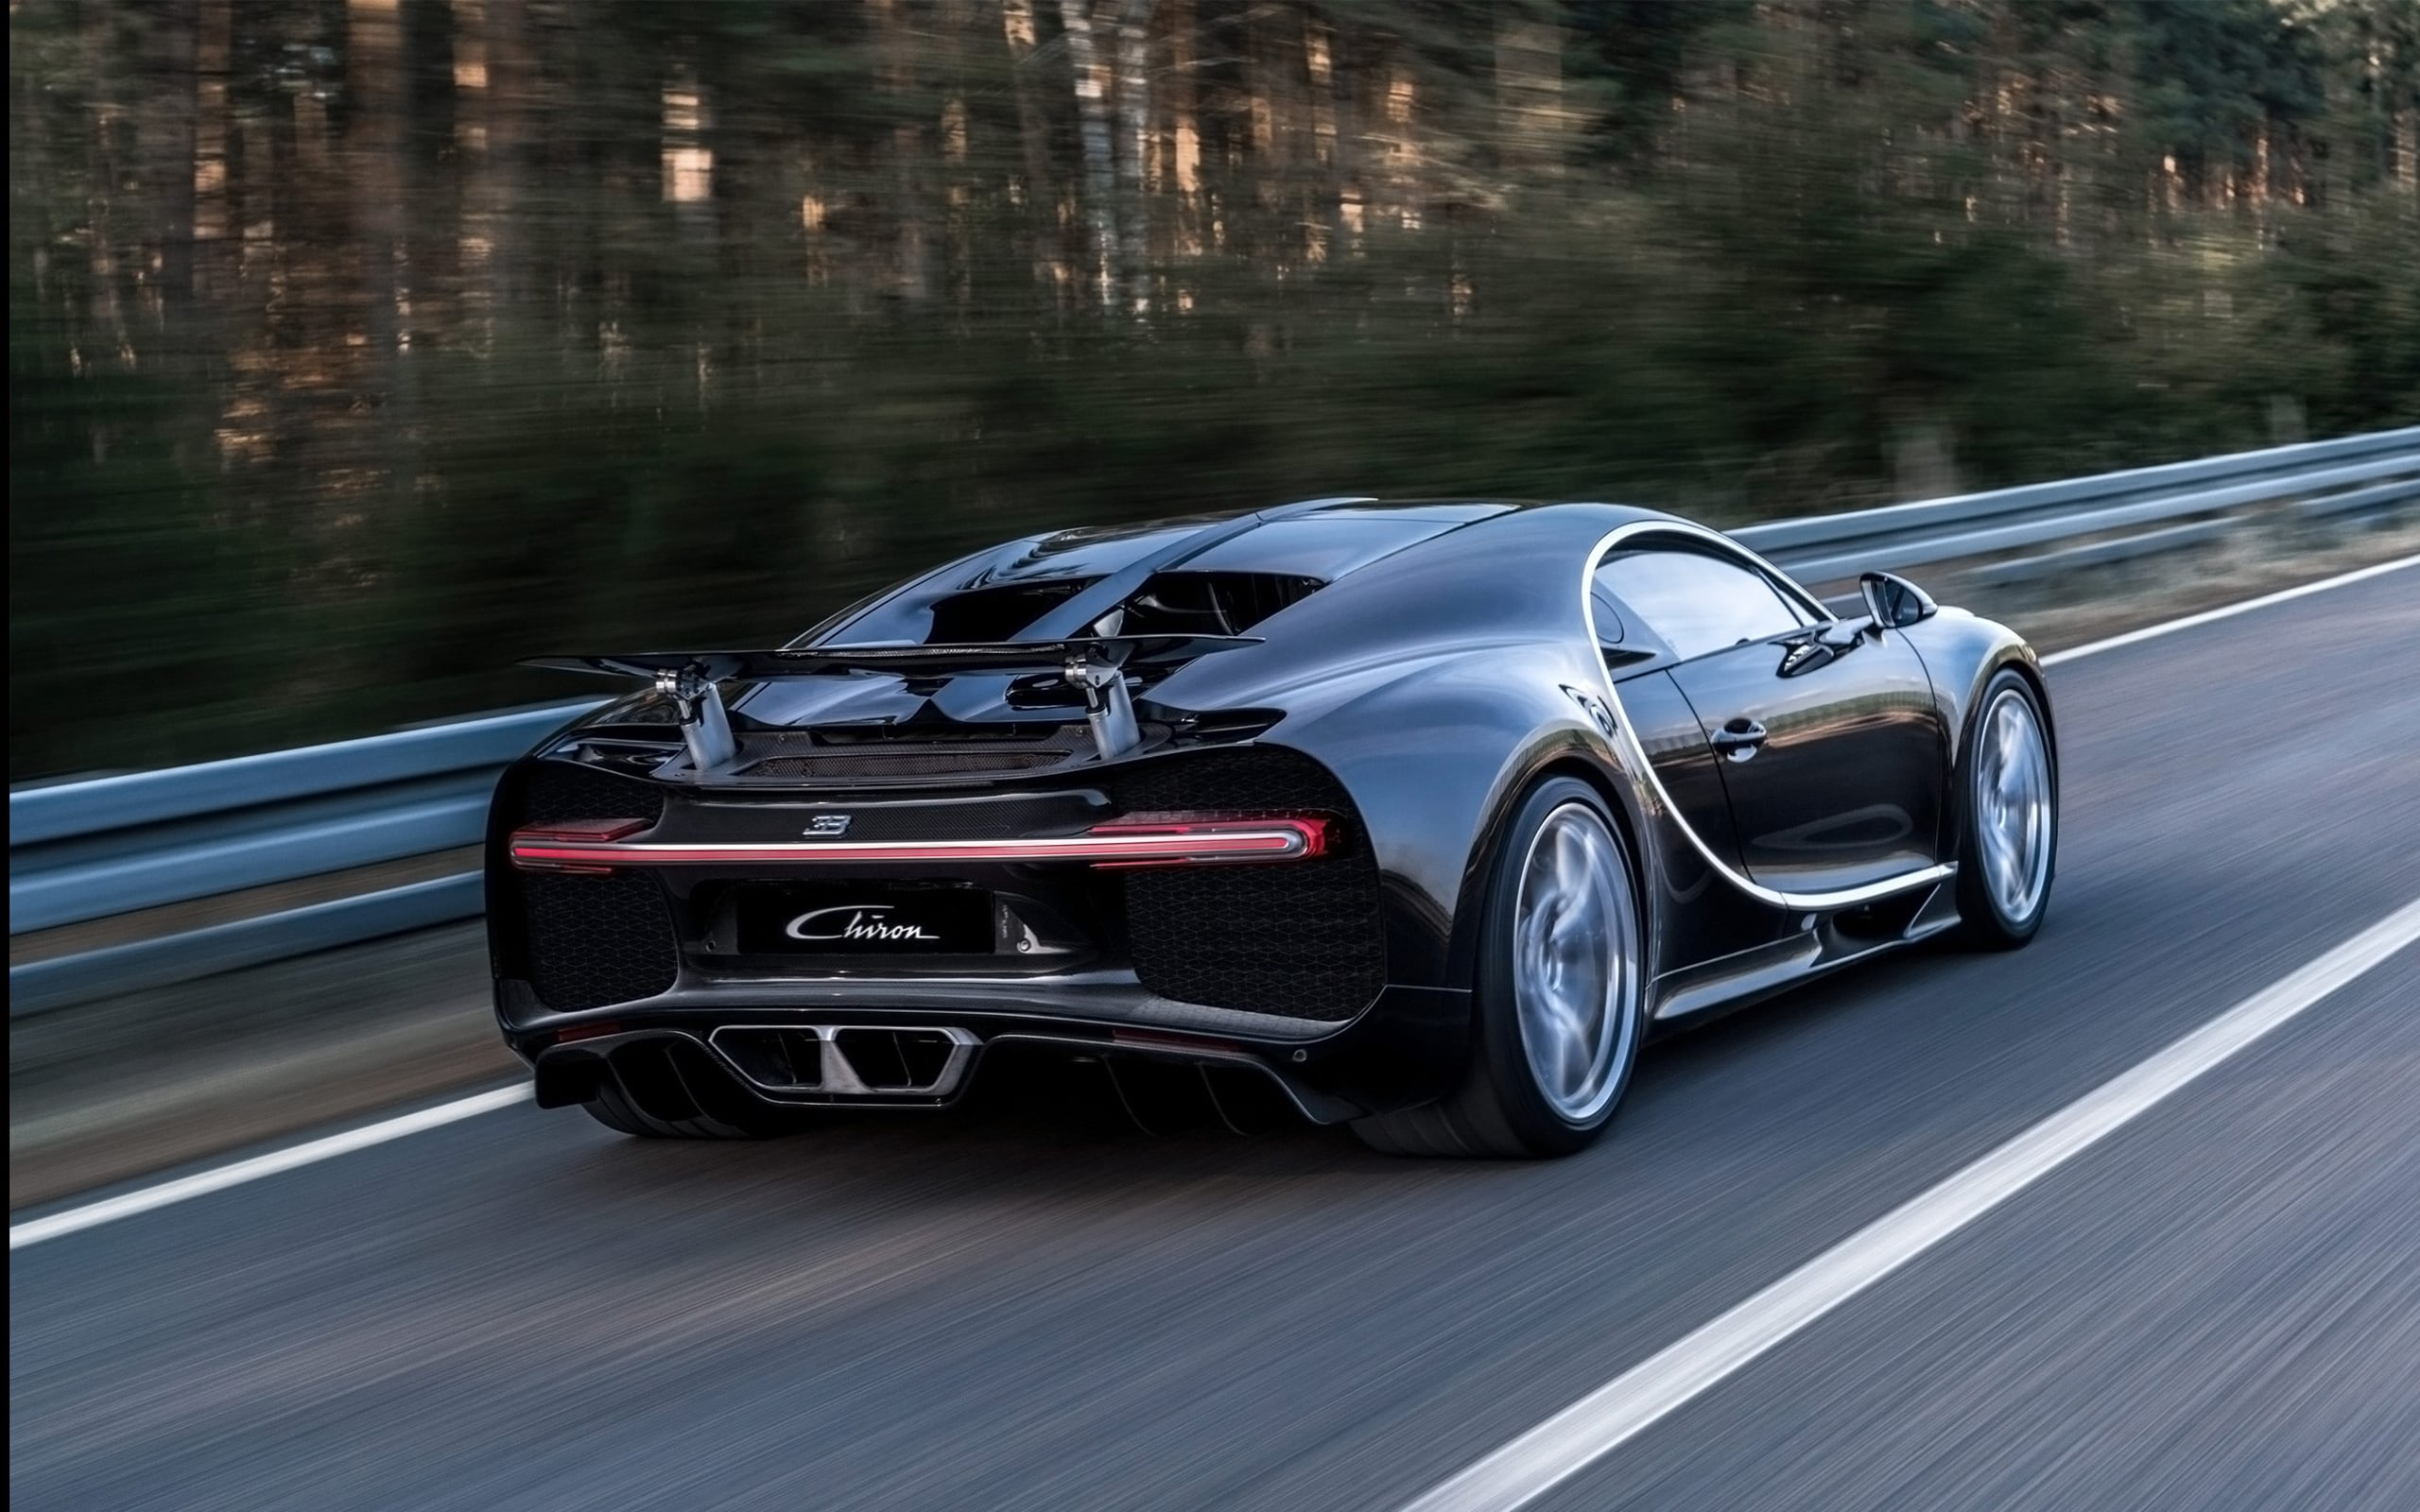 Bmw Blue Cars Wallpapers 2017 Bugatti Chiron Hd Wallpapers High Quality